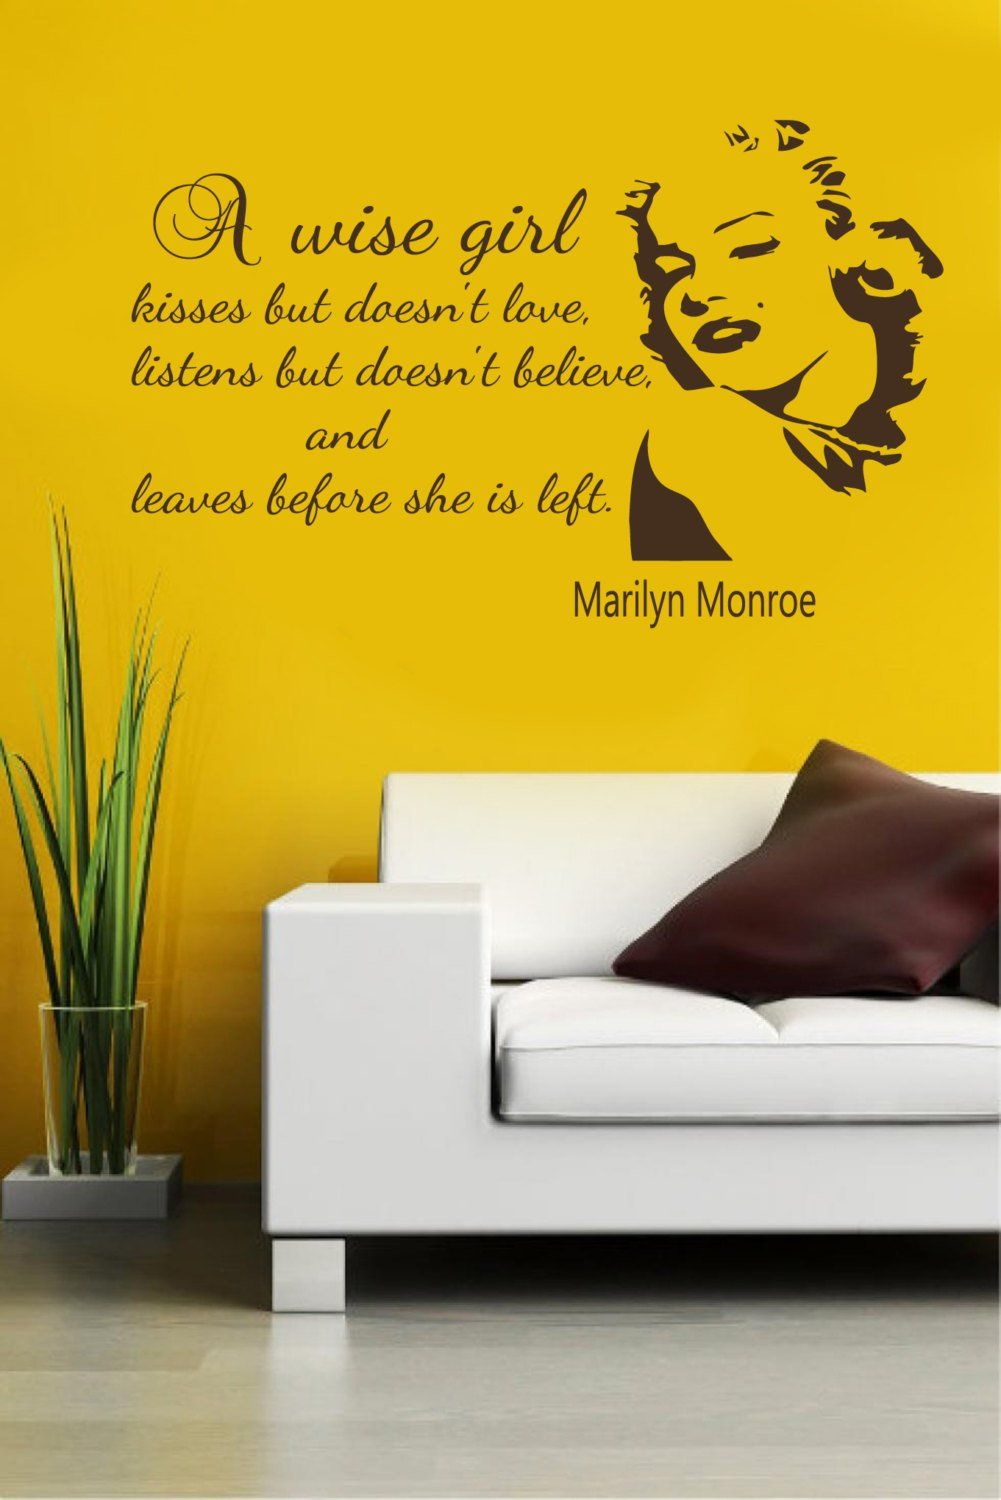 Wall Decals Quotes A Wise Girl Kisses but doesn\'t love Marilyn ...